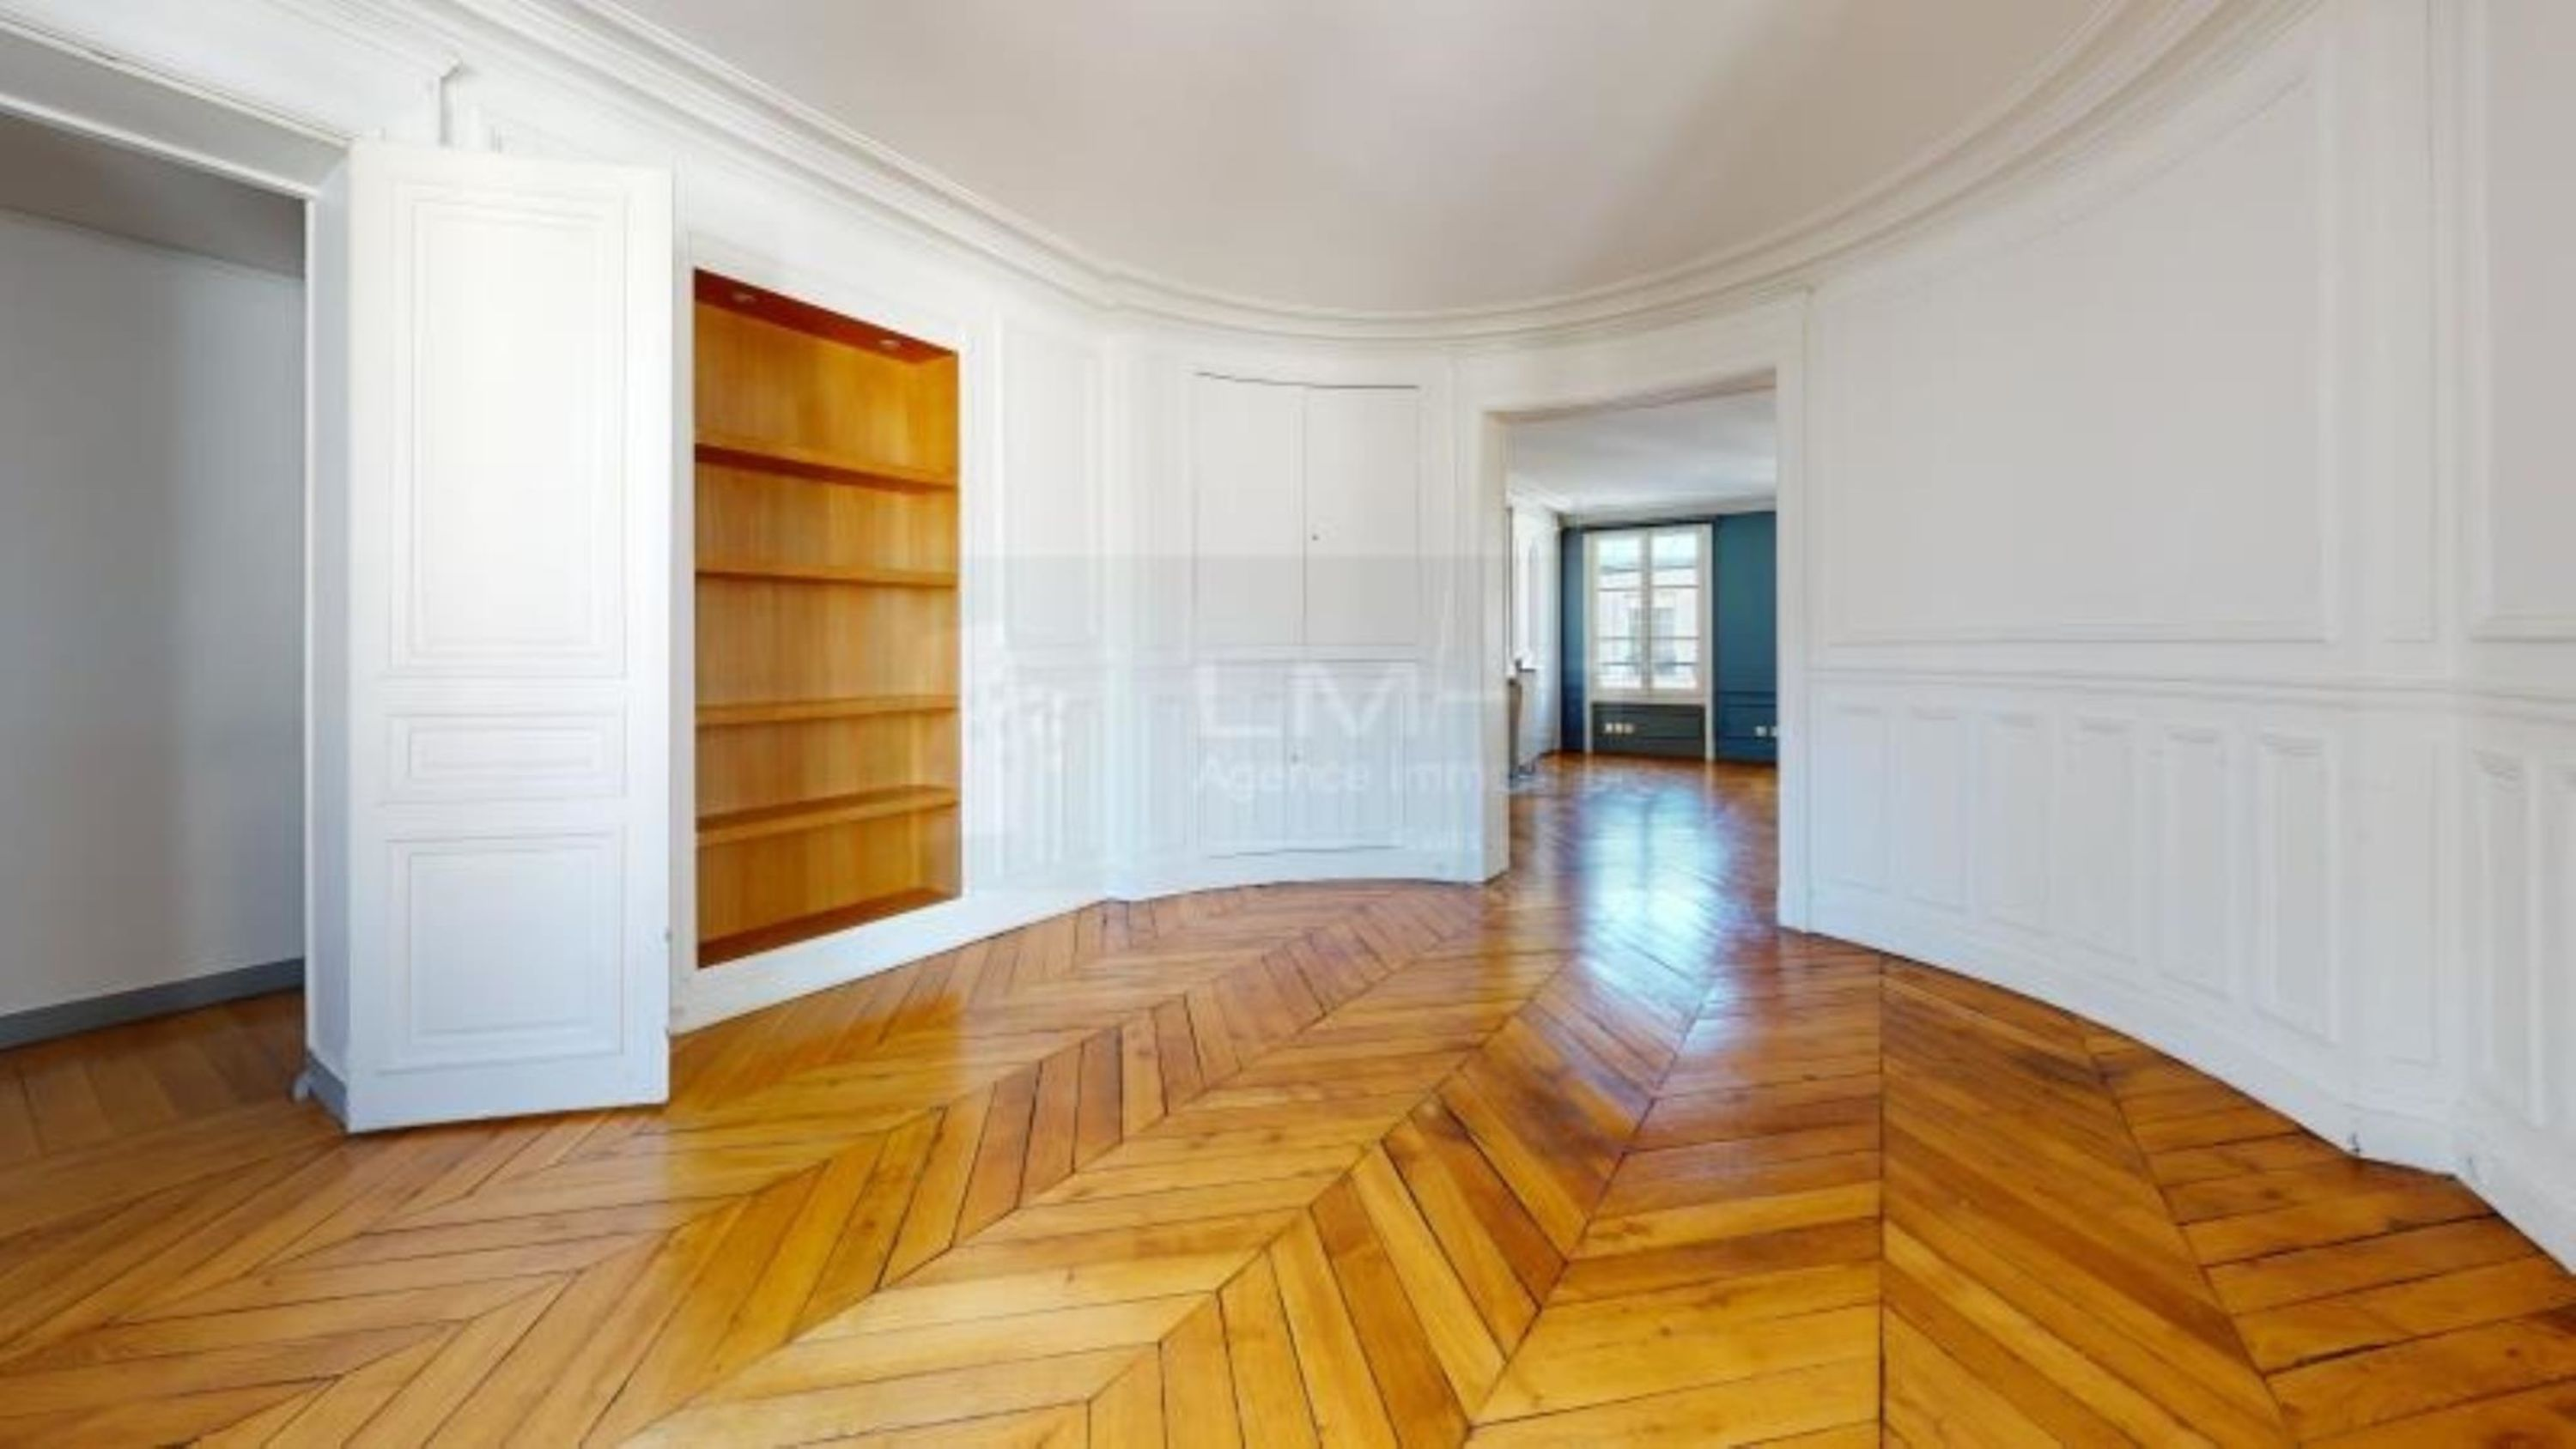 agence immobilière sevres 92 le chesnay 78 achat vente location appartement maison immobilier LMHT ANF NWHDMQUE